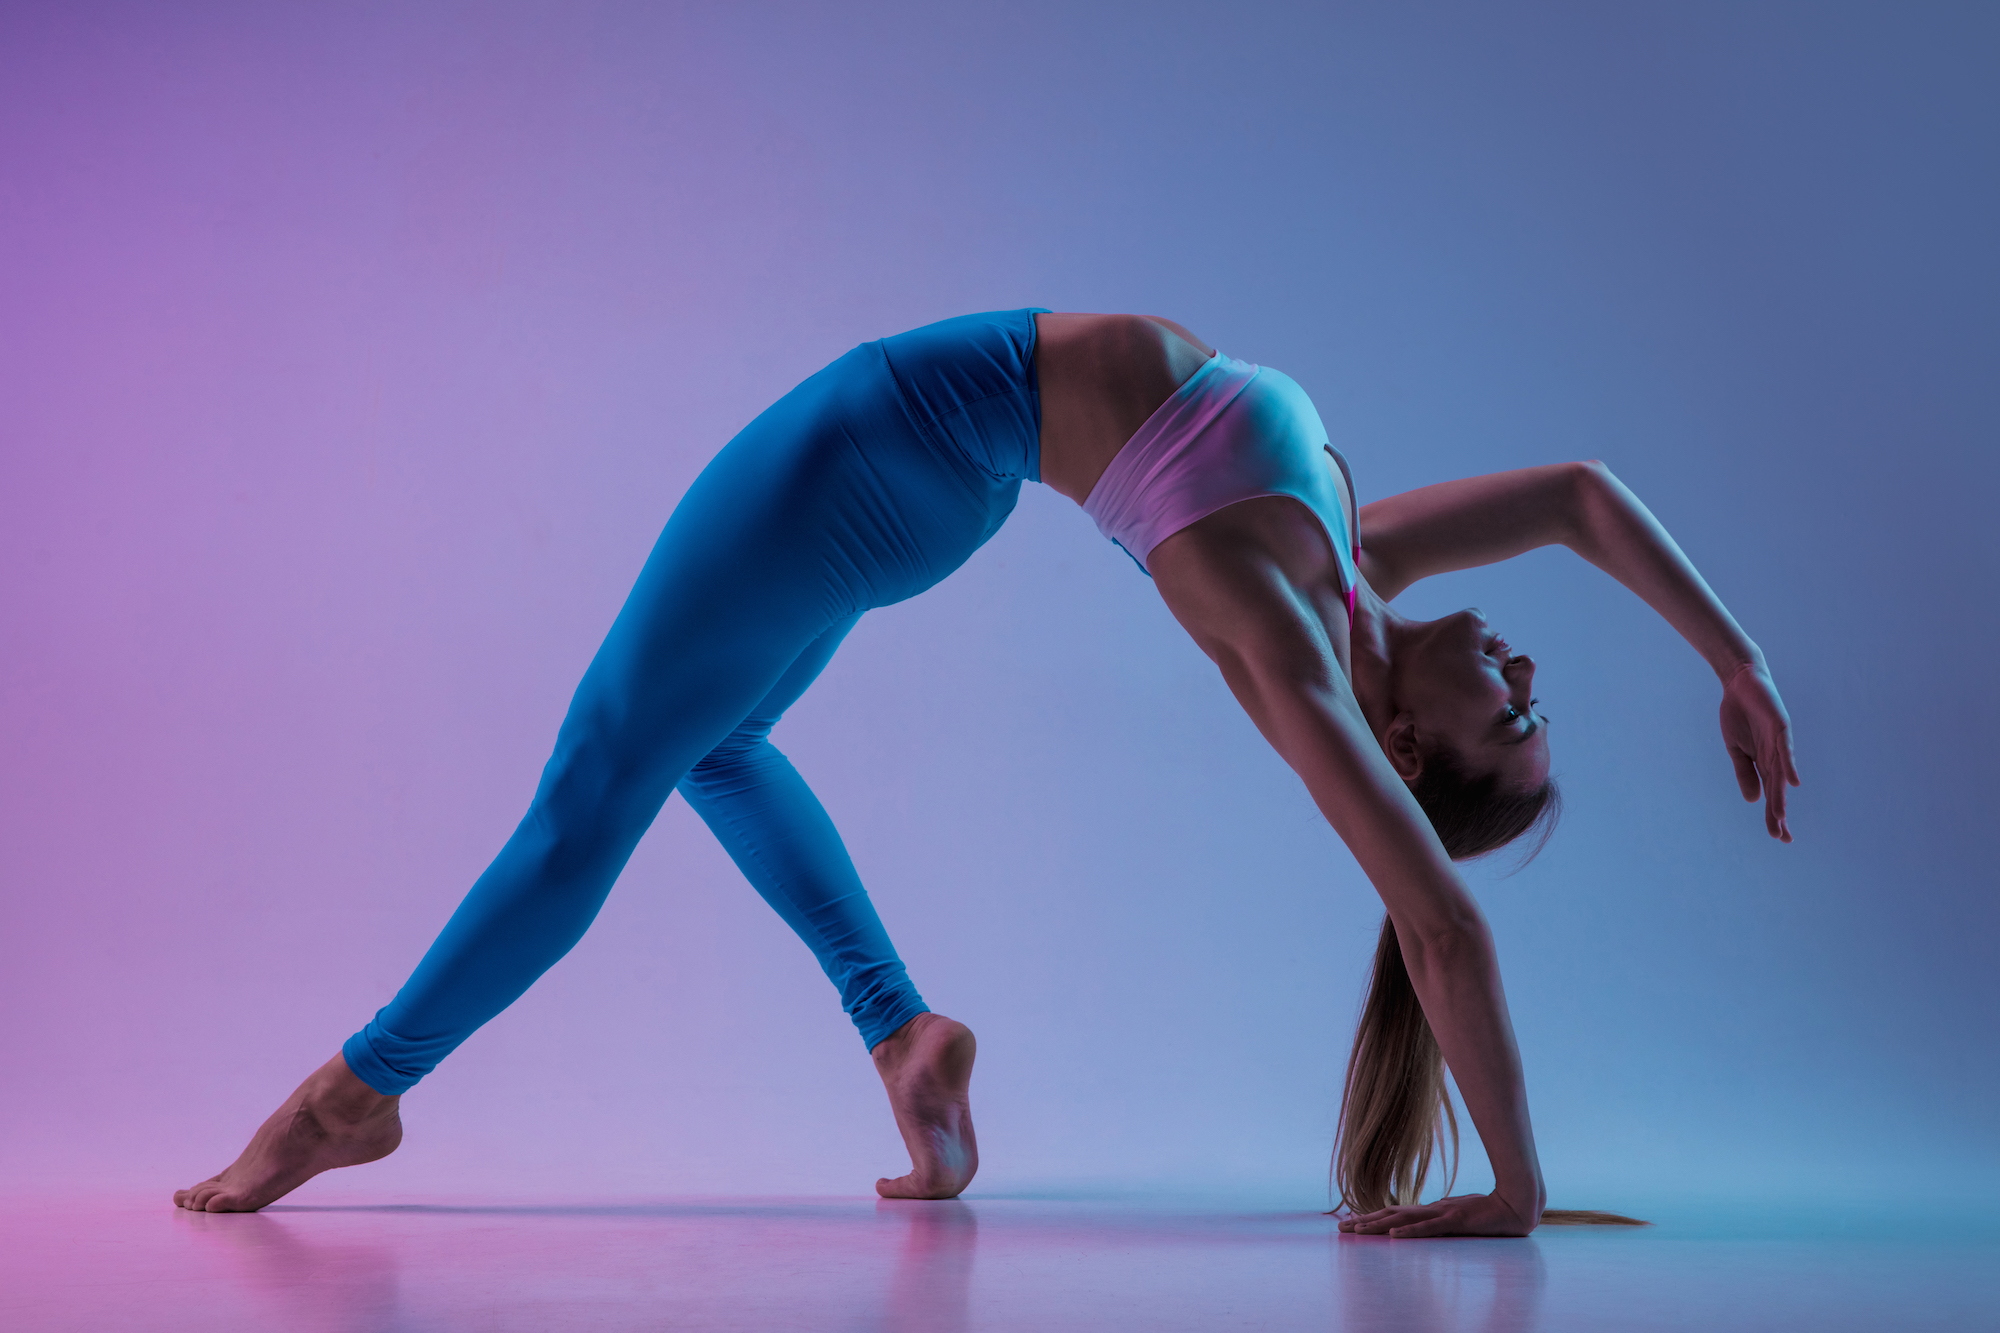 Young sportive woman training isolated on gradient studio background in neon light. athletic and graceful. Modern sport, action, motion, youth concept. Beautiful caucasian woman practicing.